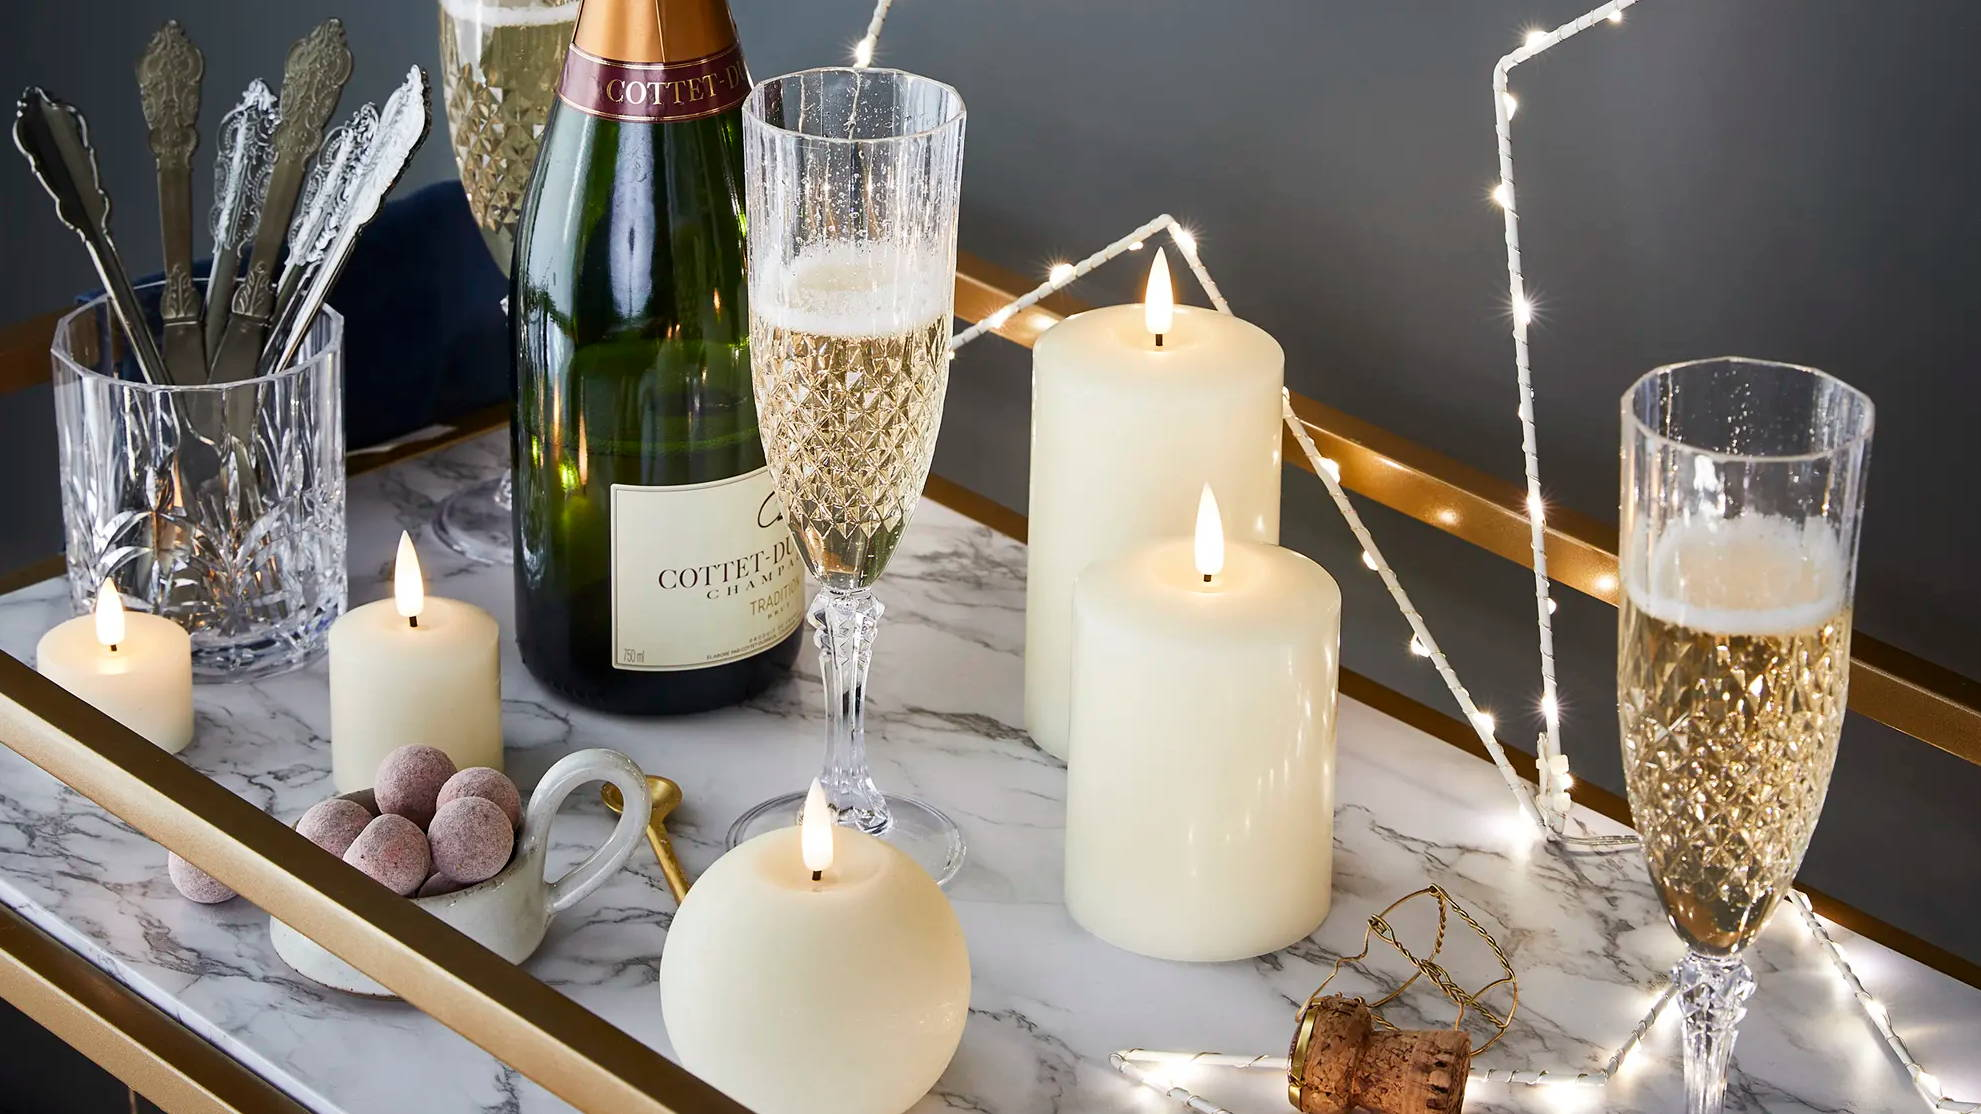 Star light and TruGlow candles styled as part of New Year's table with champagne glasses